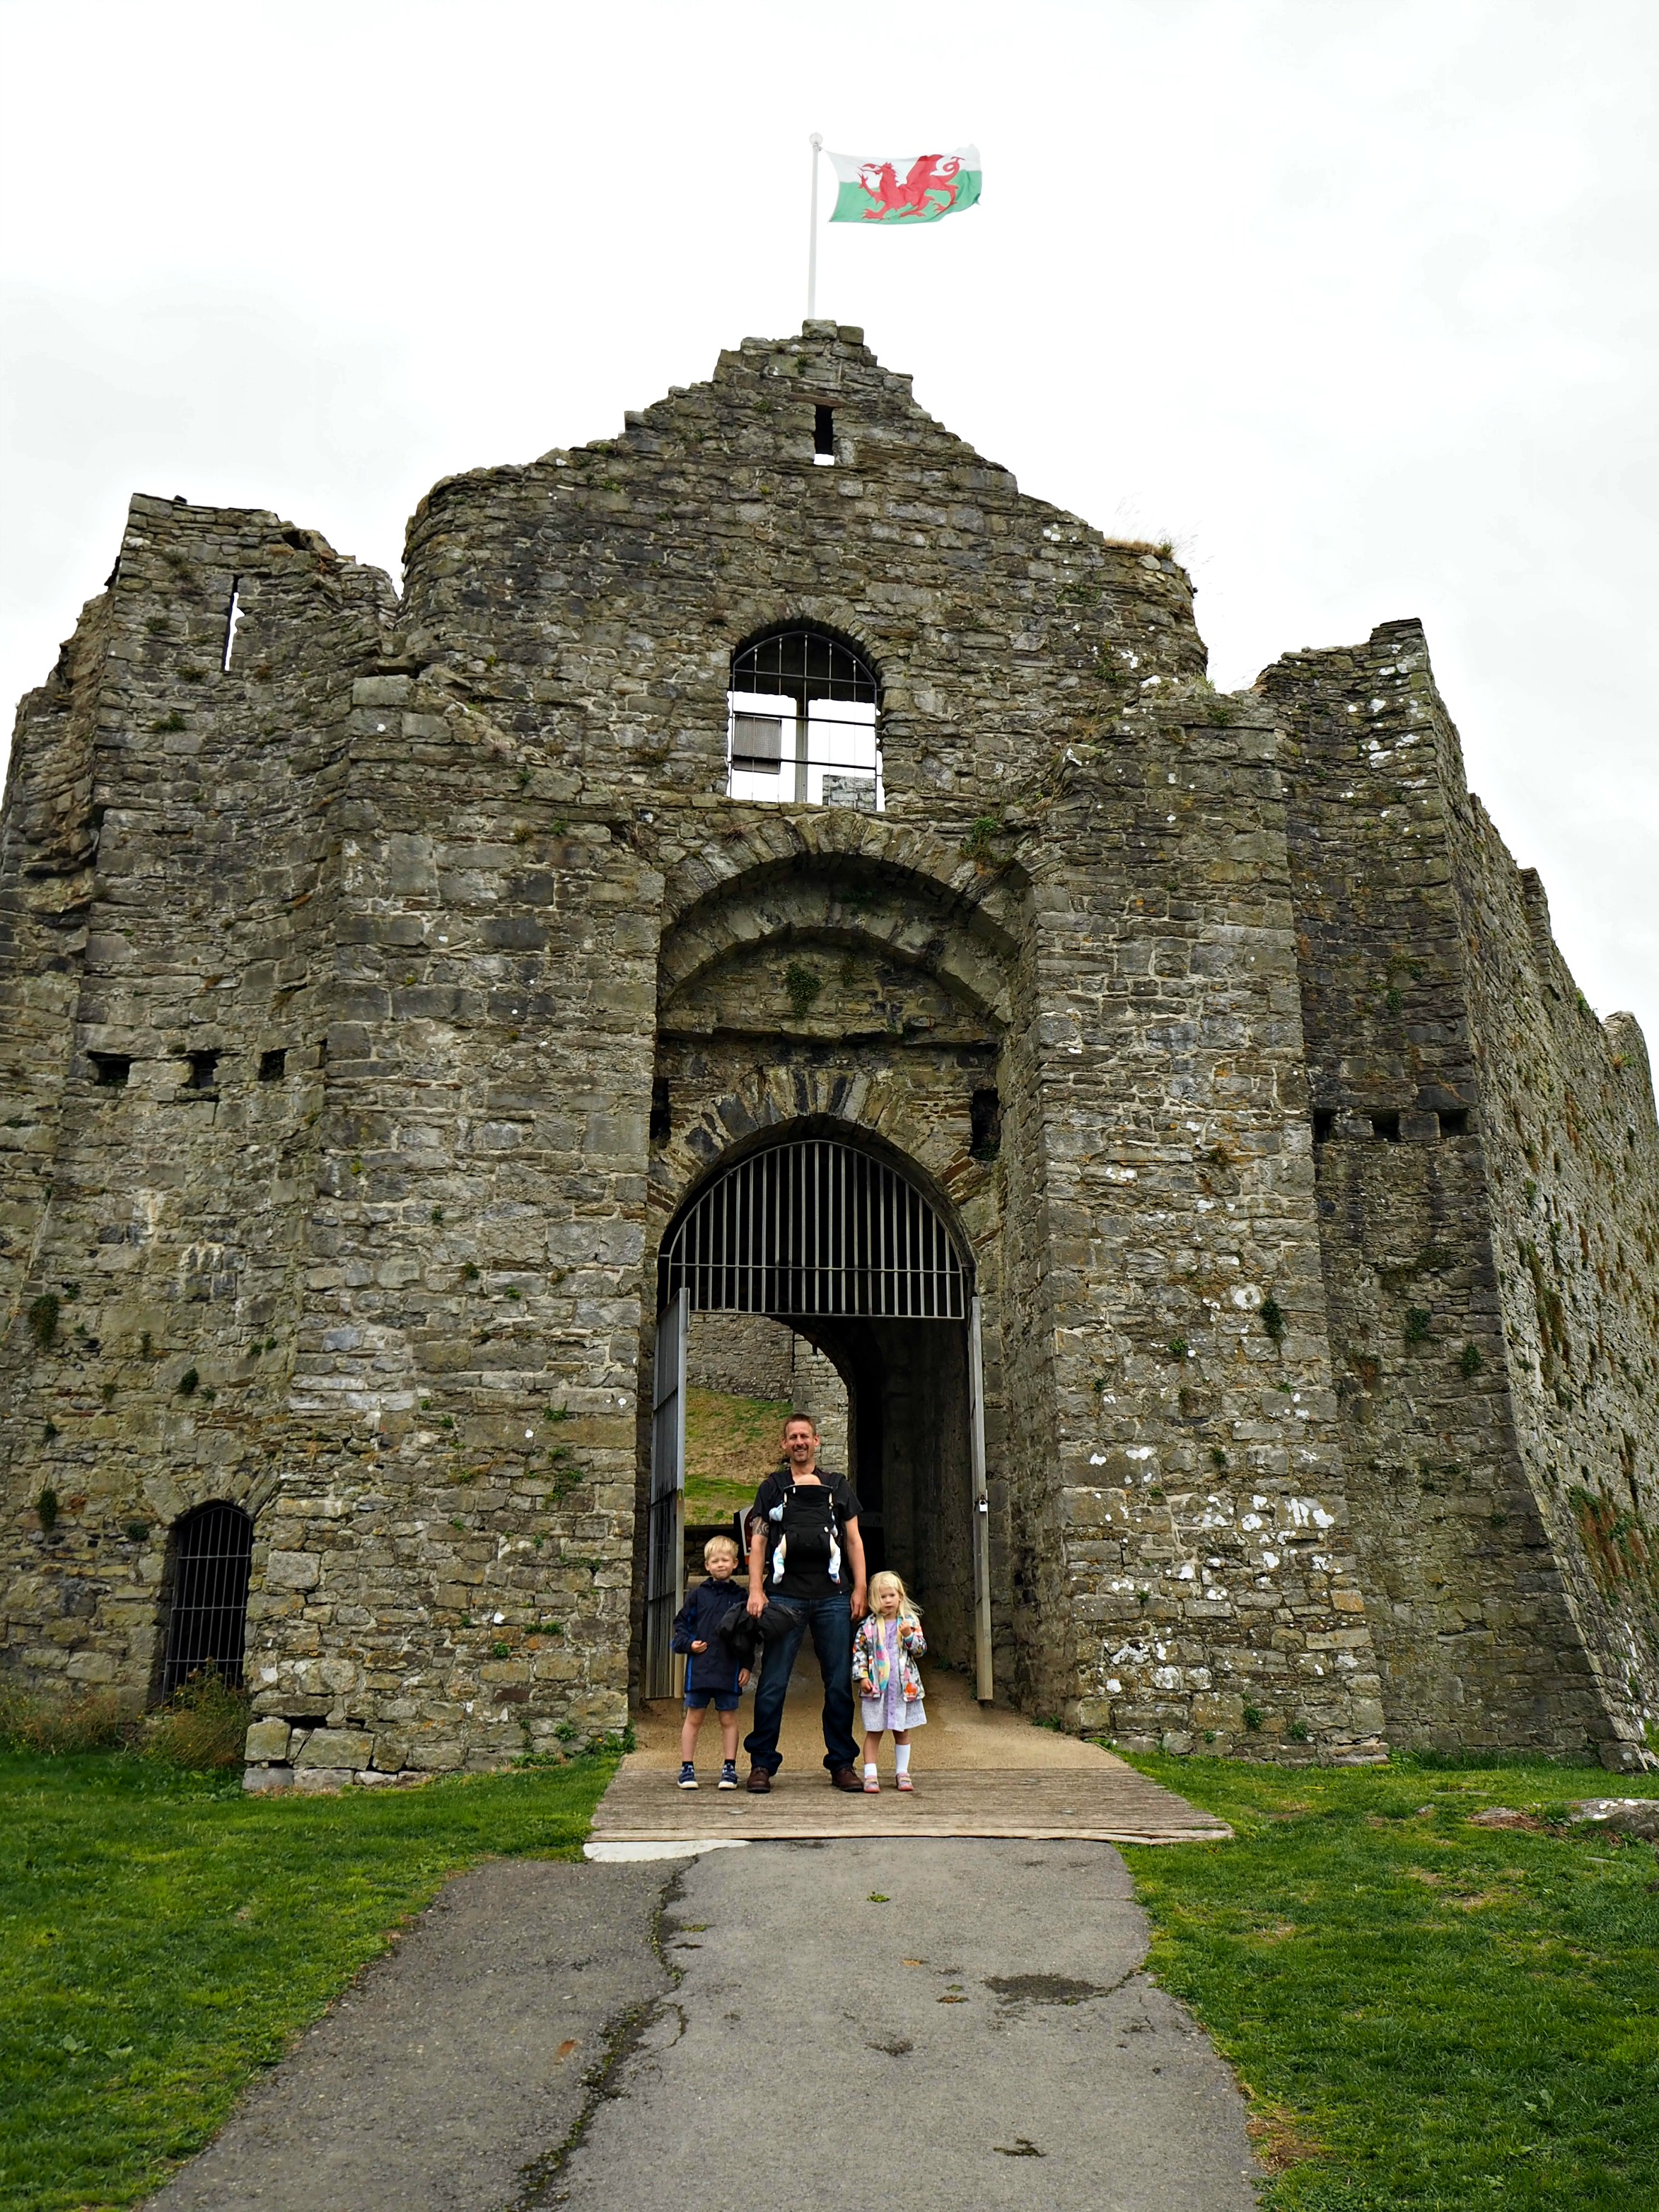 Our Welsh Holiday Highlights - Summer 2018 - Oystermouth Castle